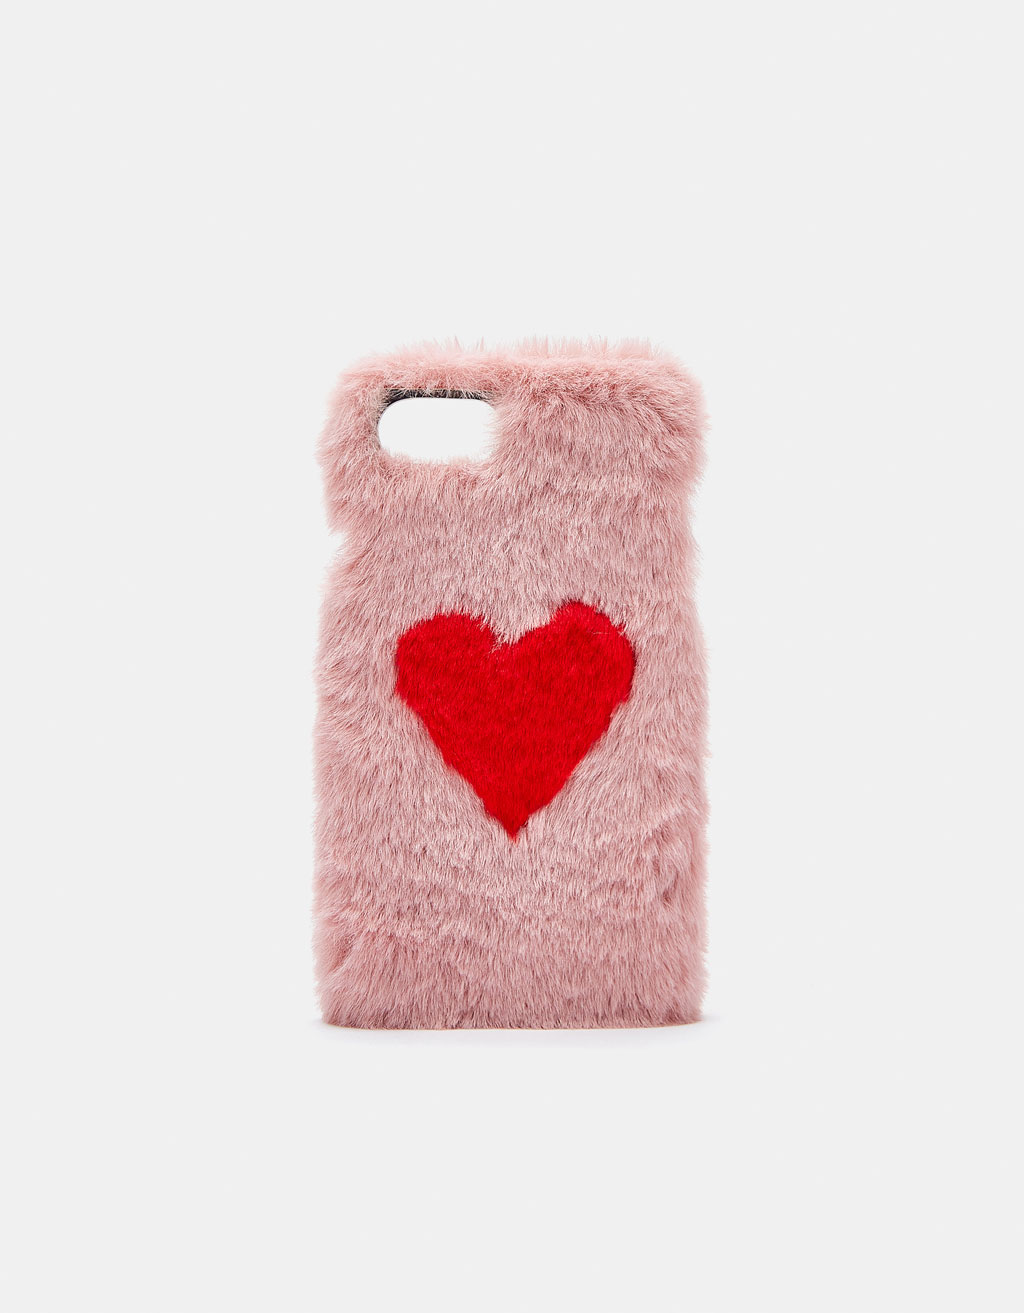 Fluffy iPhone 6/6s/7/8 case with heart detail